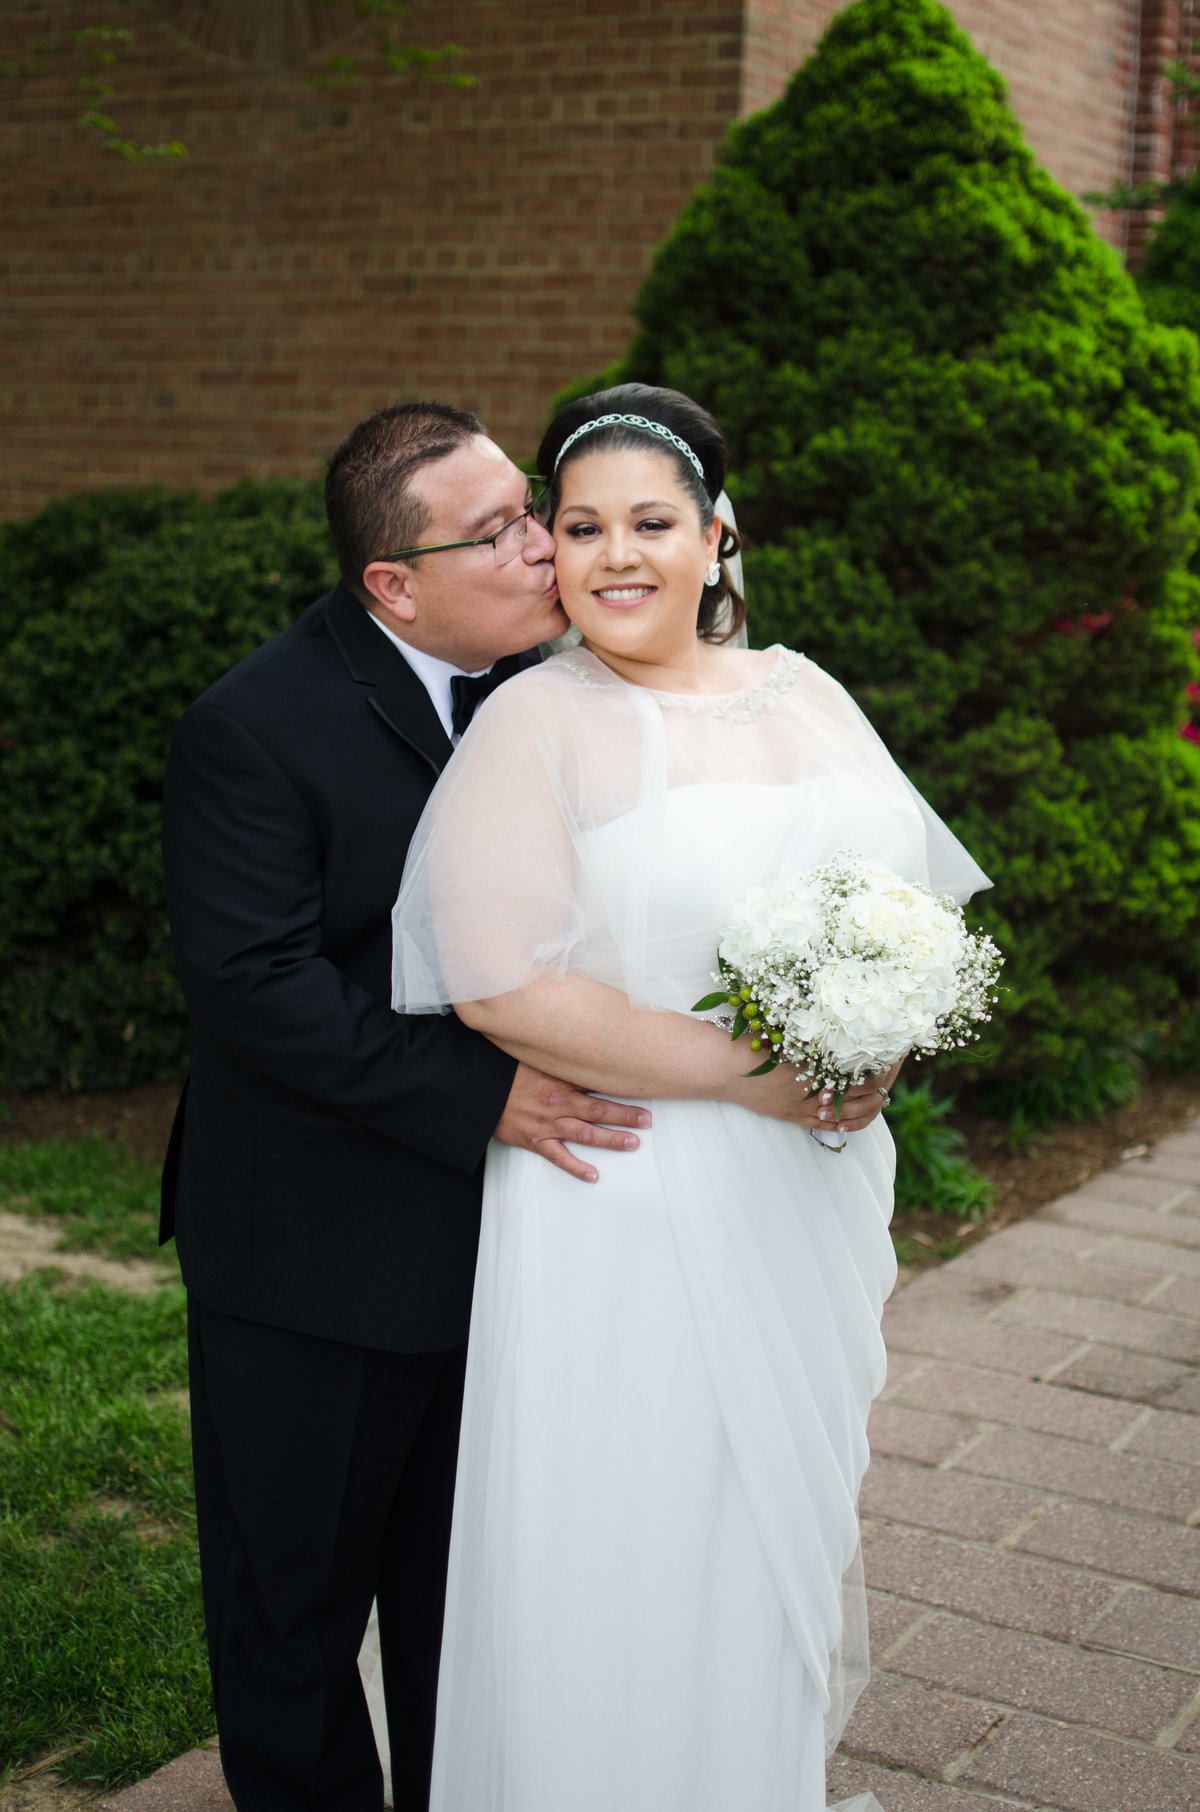 Olivia&Julian_Uplifted_Photography-7